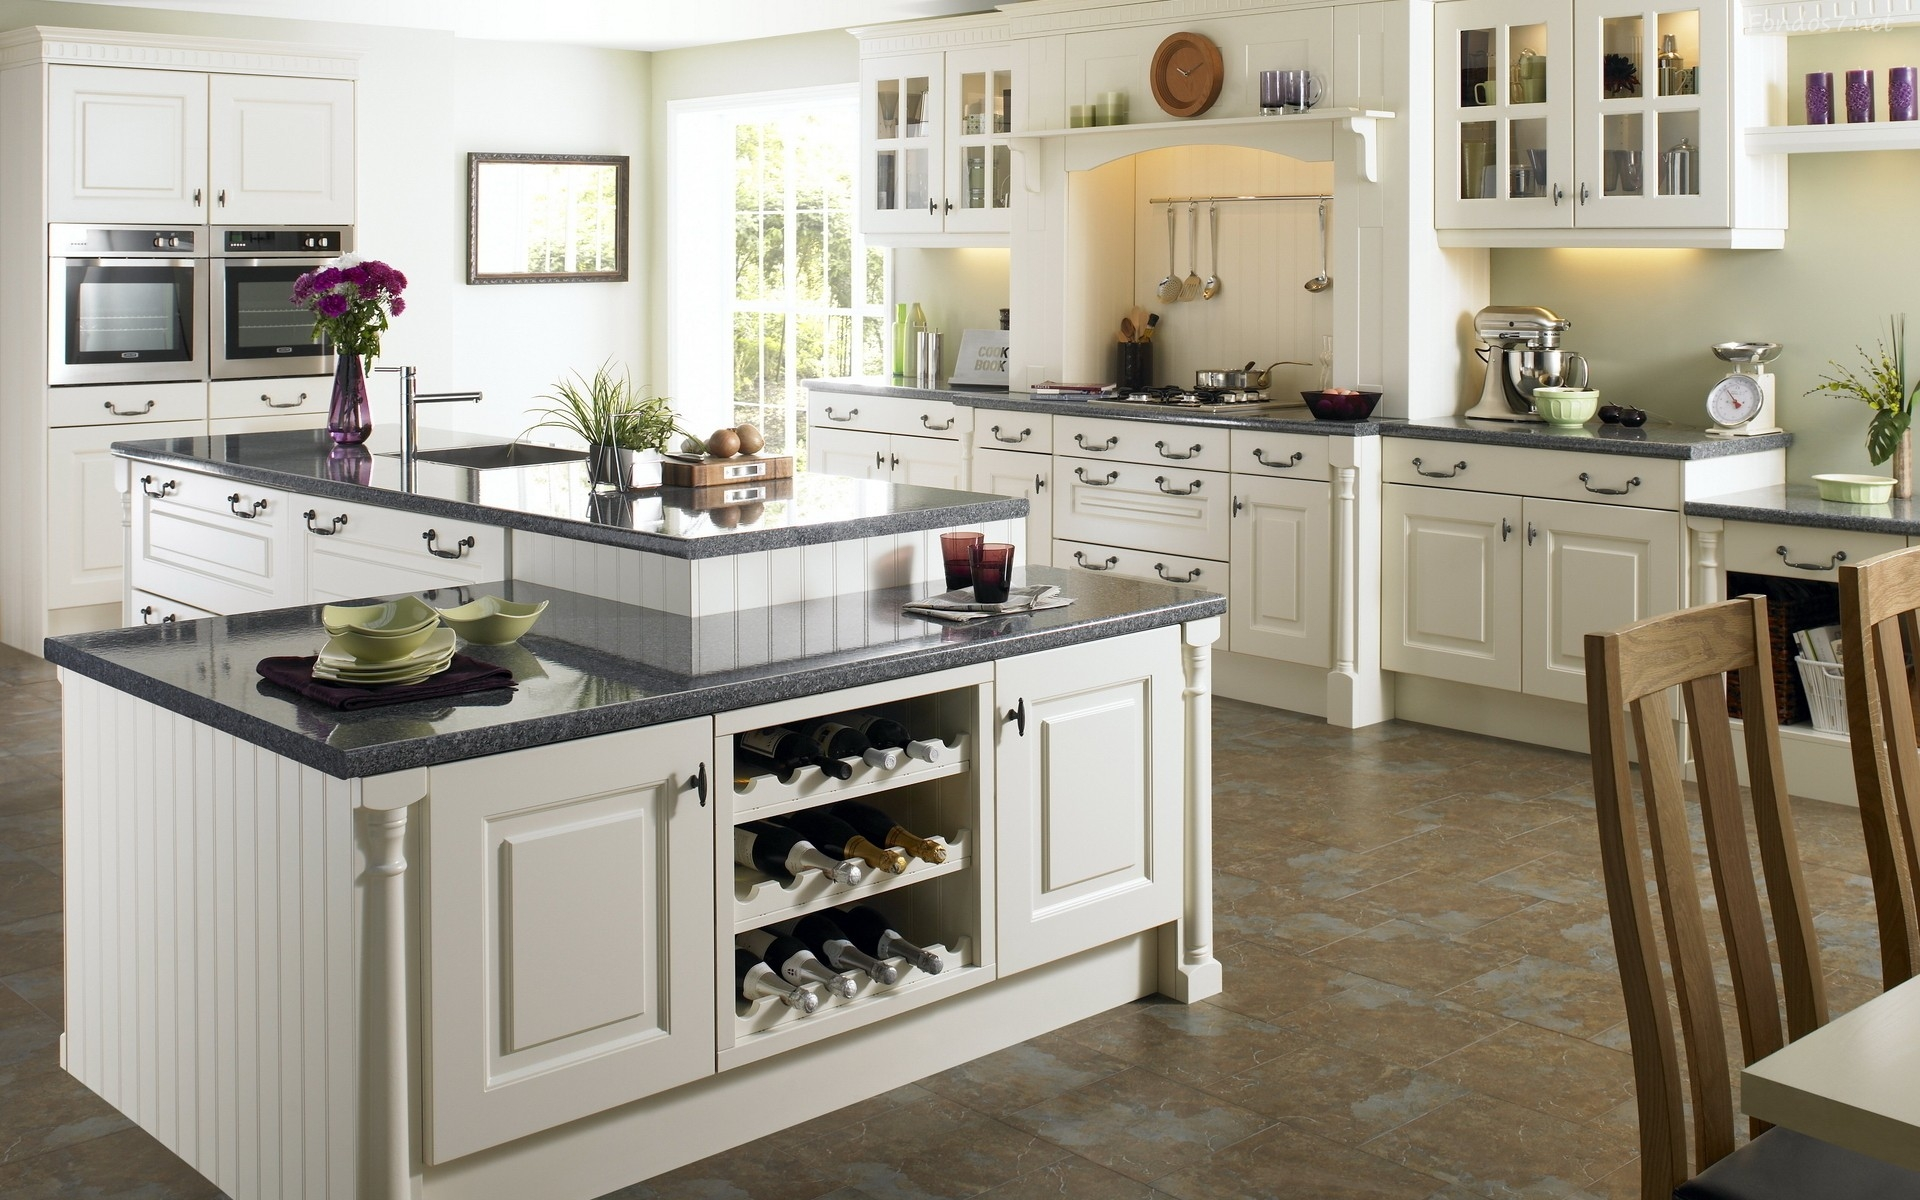 Kitchen Showrooms – Abstract Wallpaper photo - 1